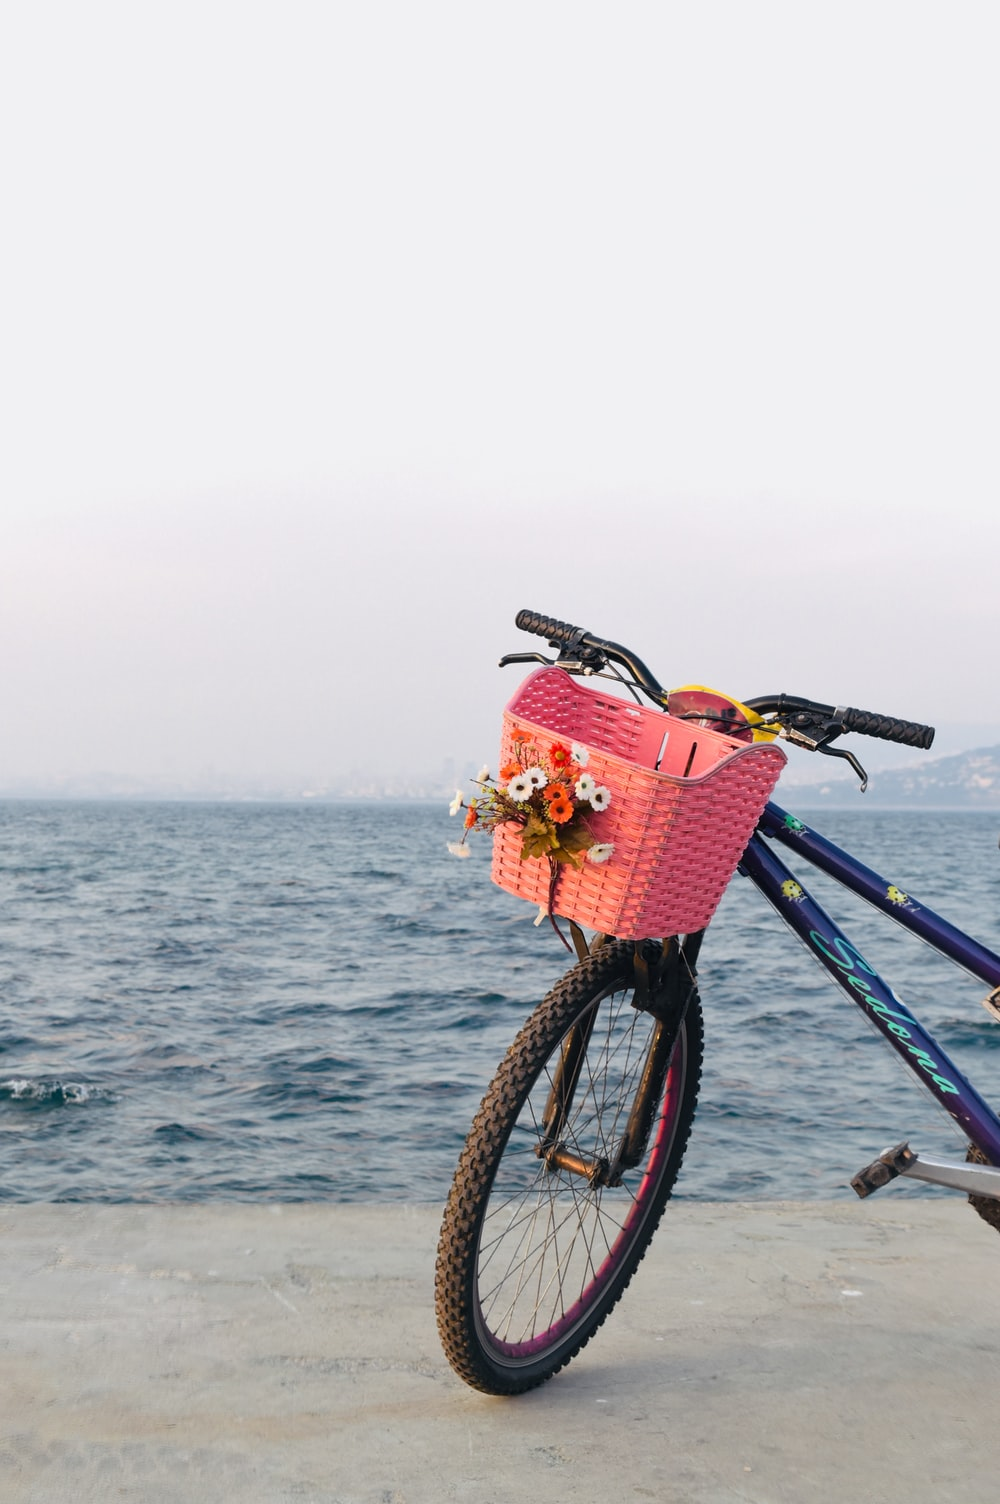 black and blue bicycle with basket